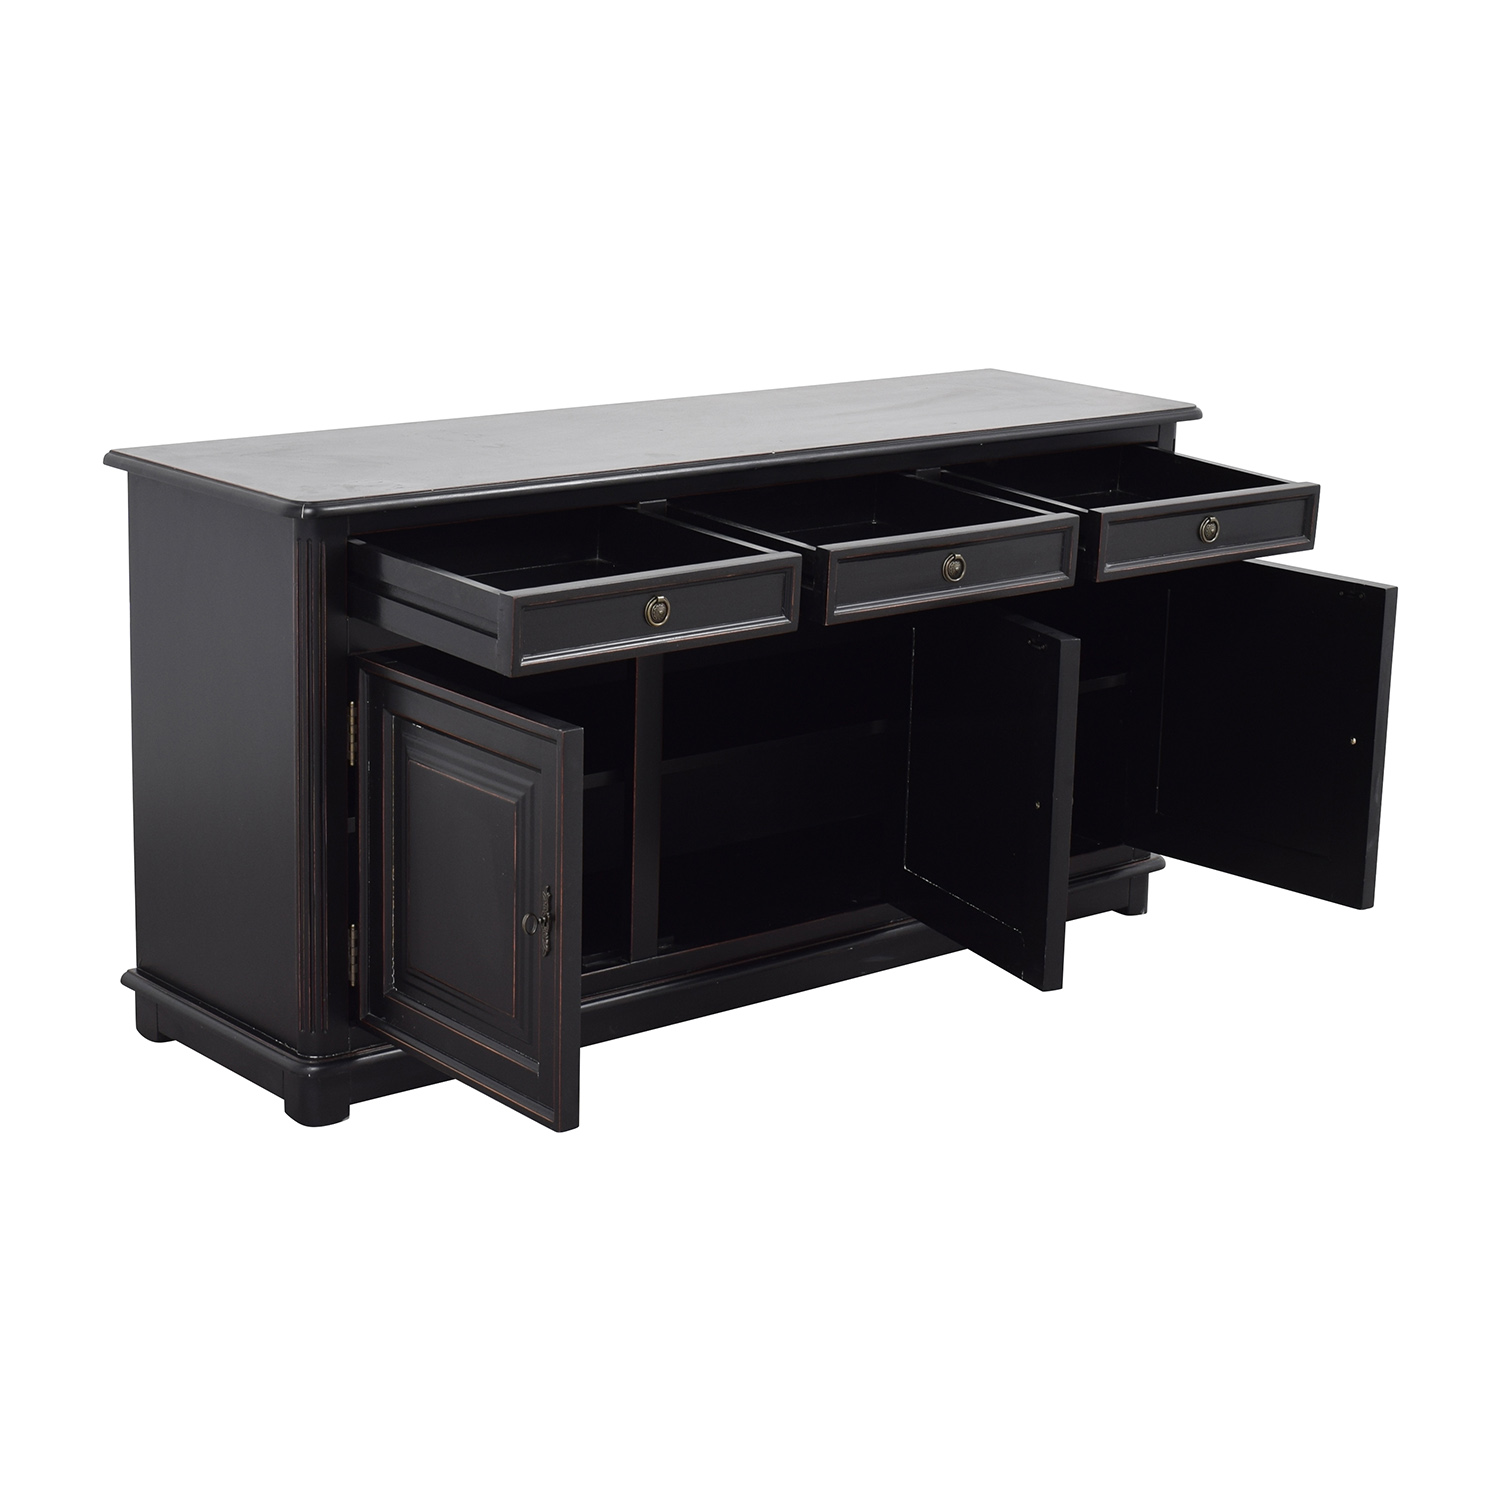 Ballard Designs Ballard Designs Dehavilland 3-Drawer Console or Sidetable coupon